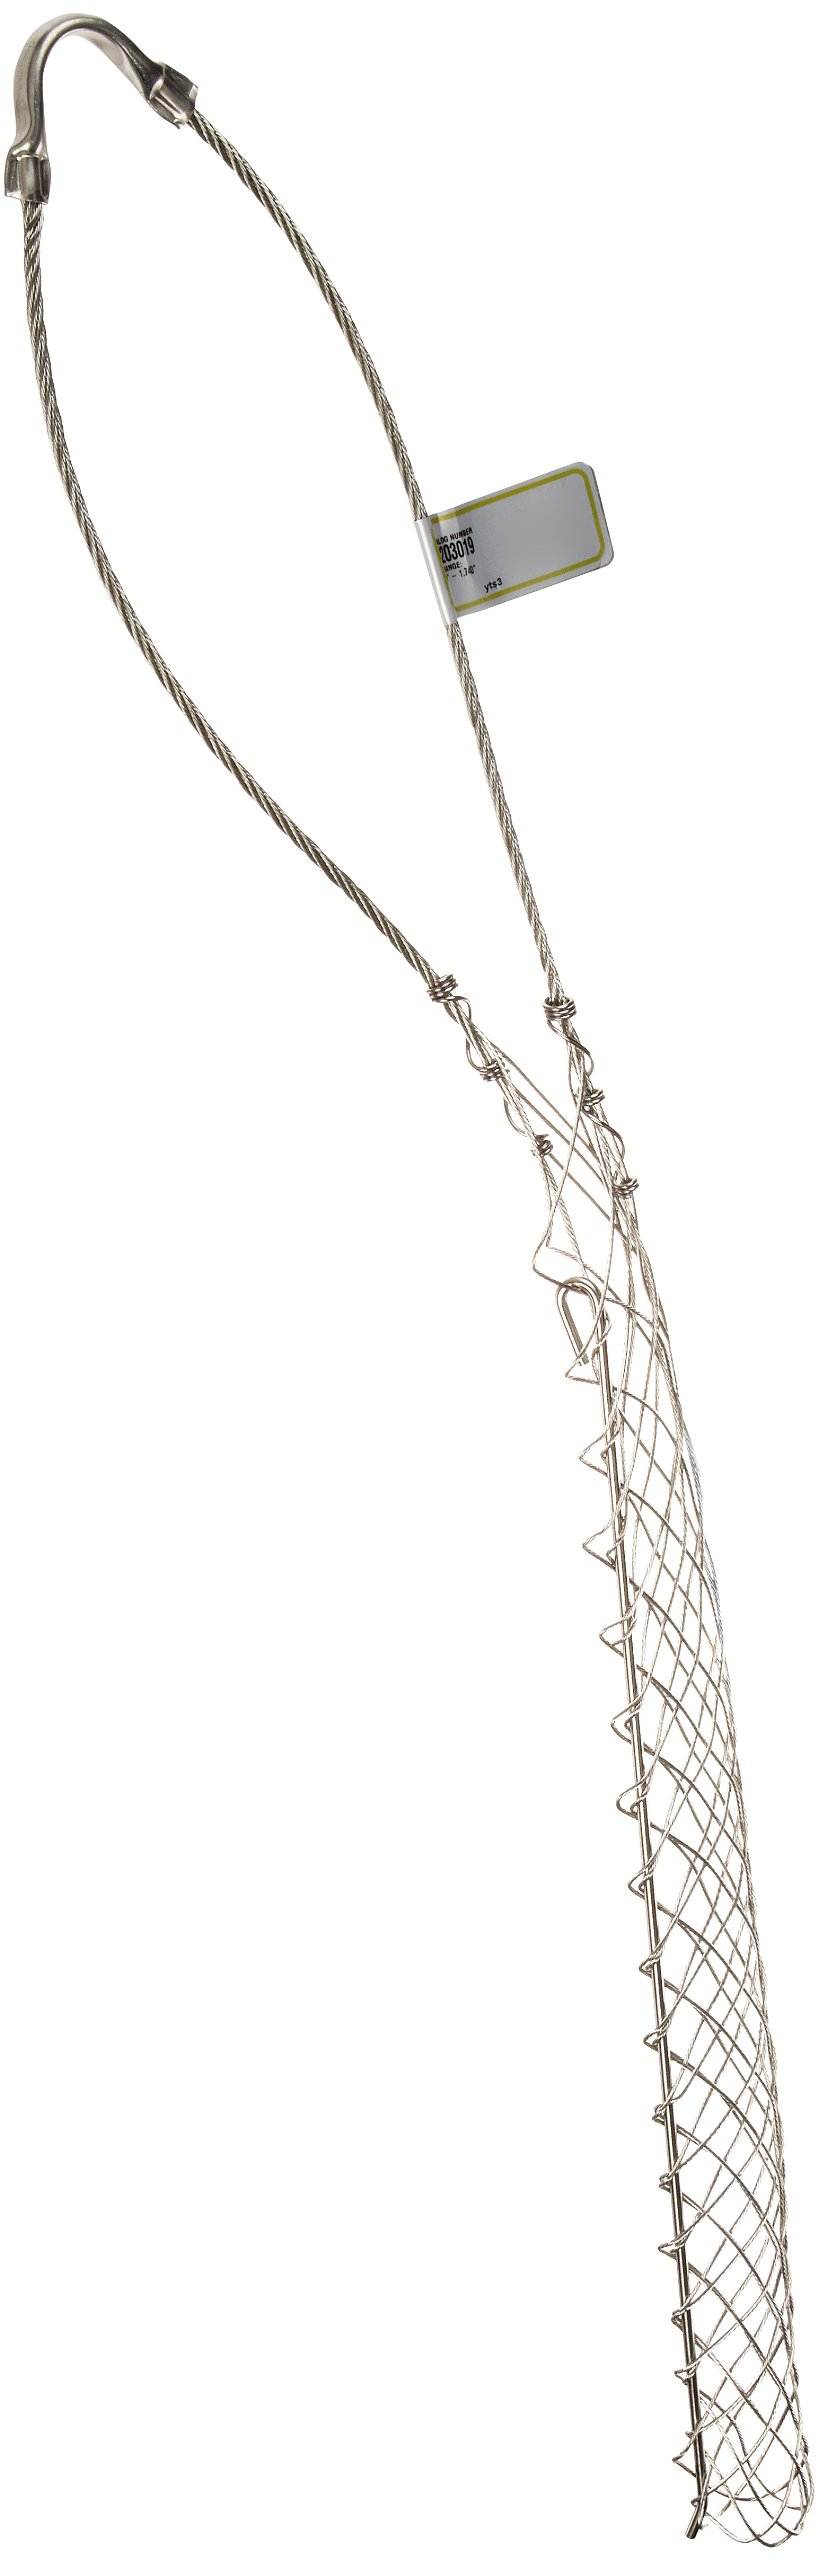 Hubbell Wiring Systems 02203019 Kellems Tin-Coated Bronze Standard Duty Support Grip, Single Eye, Split Mesh, Rod Closing, Single Weave, 1610 lbs Breaking Strength, 1.50''-1.74'' Cable Diameter